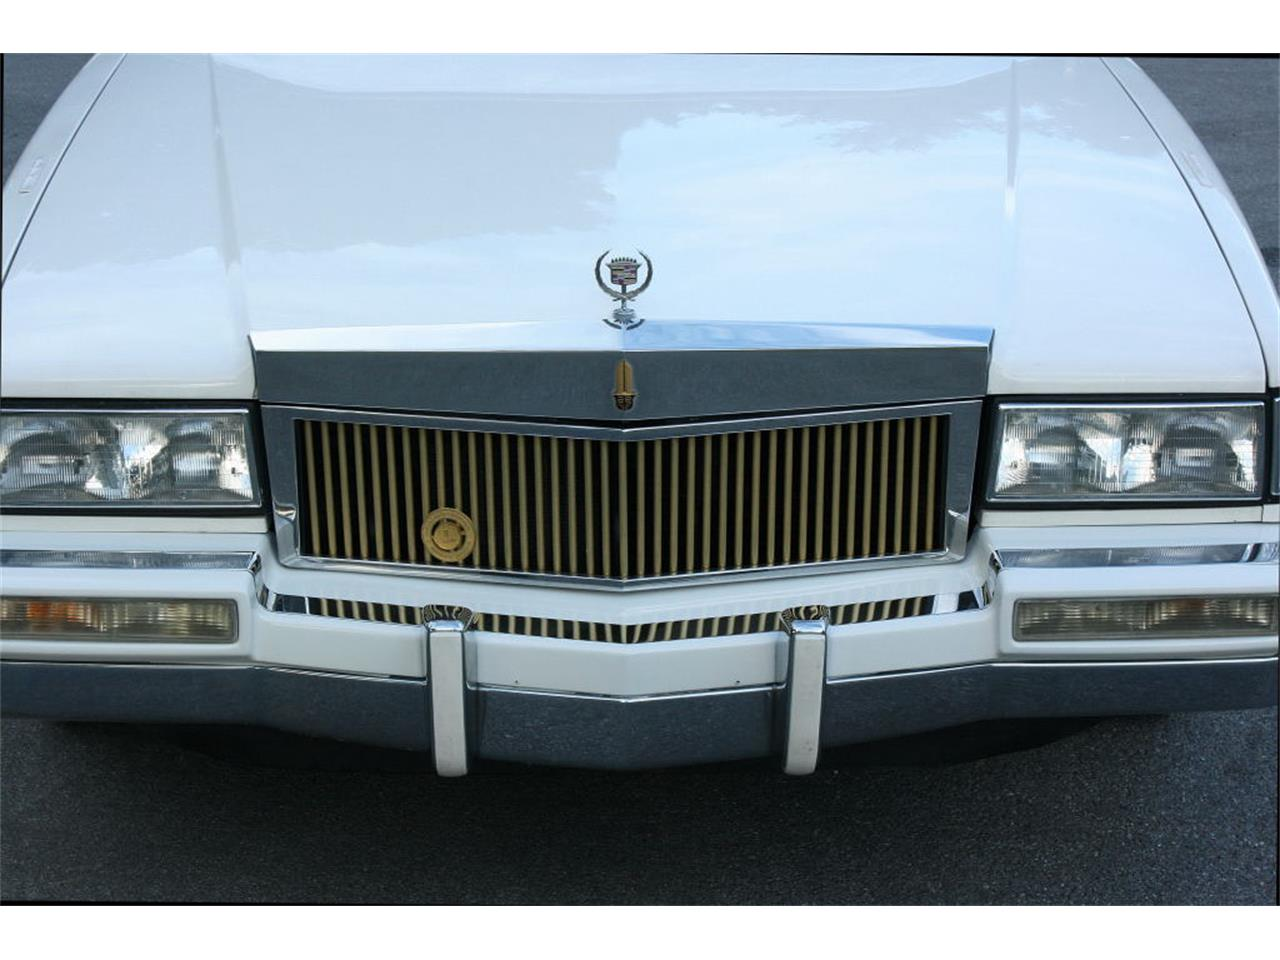 Large Picture of 1991 Cadillac Sedan located in Lakeland Florida - $9,500.00 Offered by MJC Classic Cars - L5XM